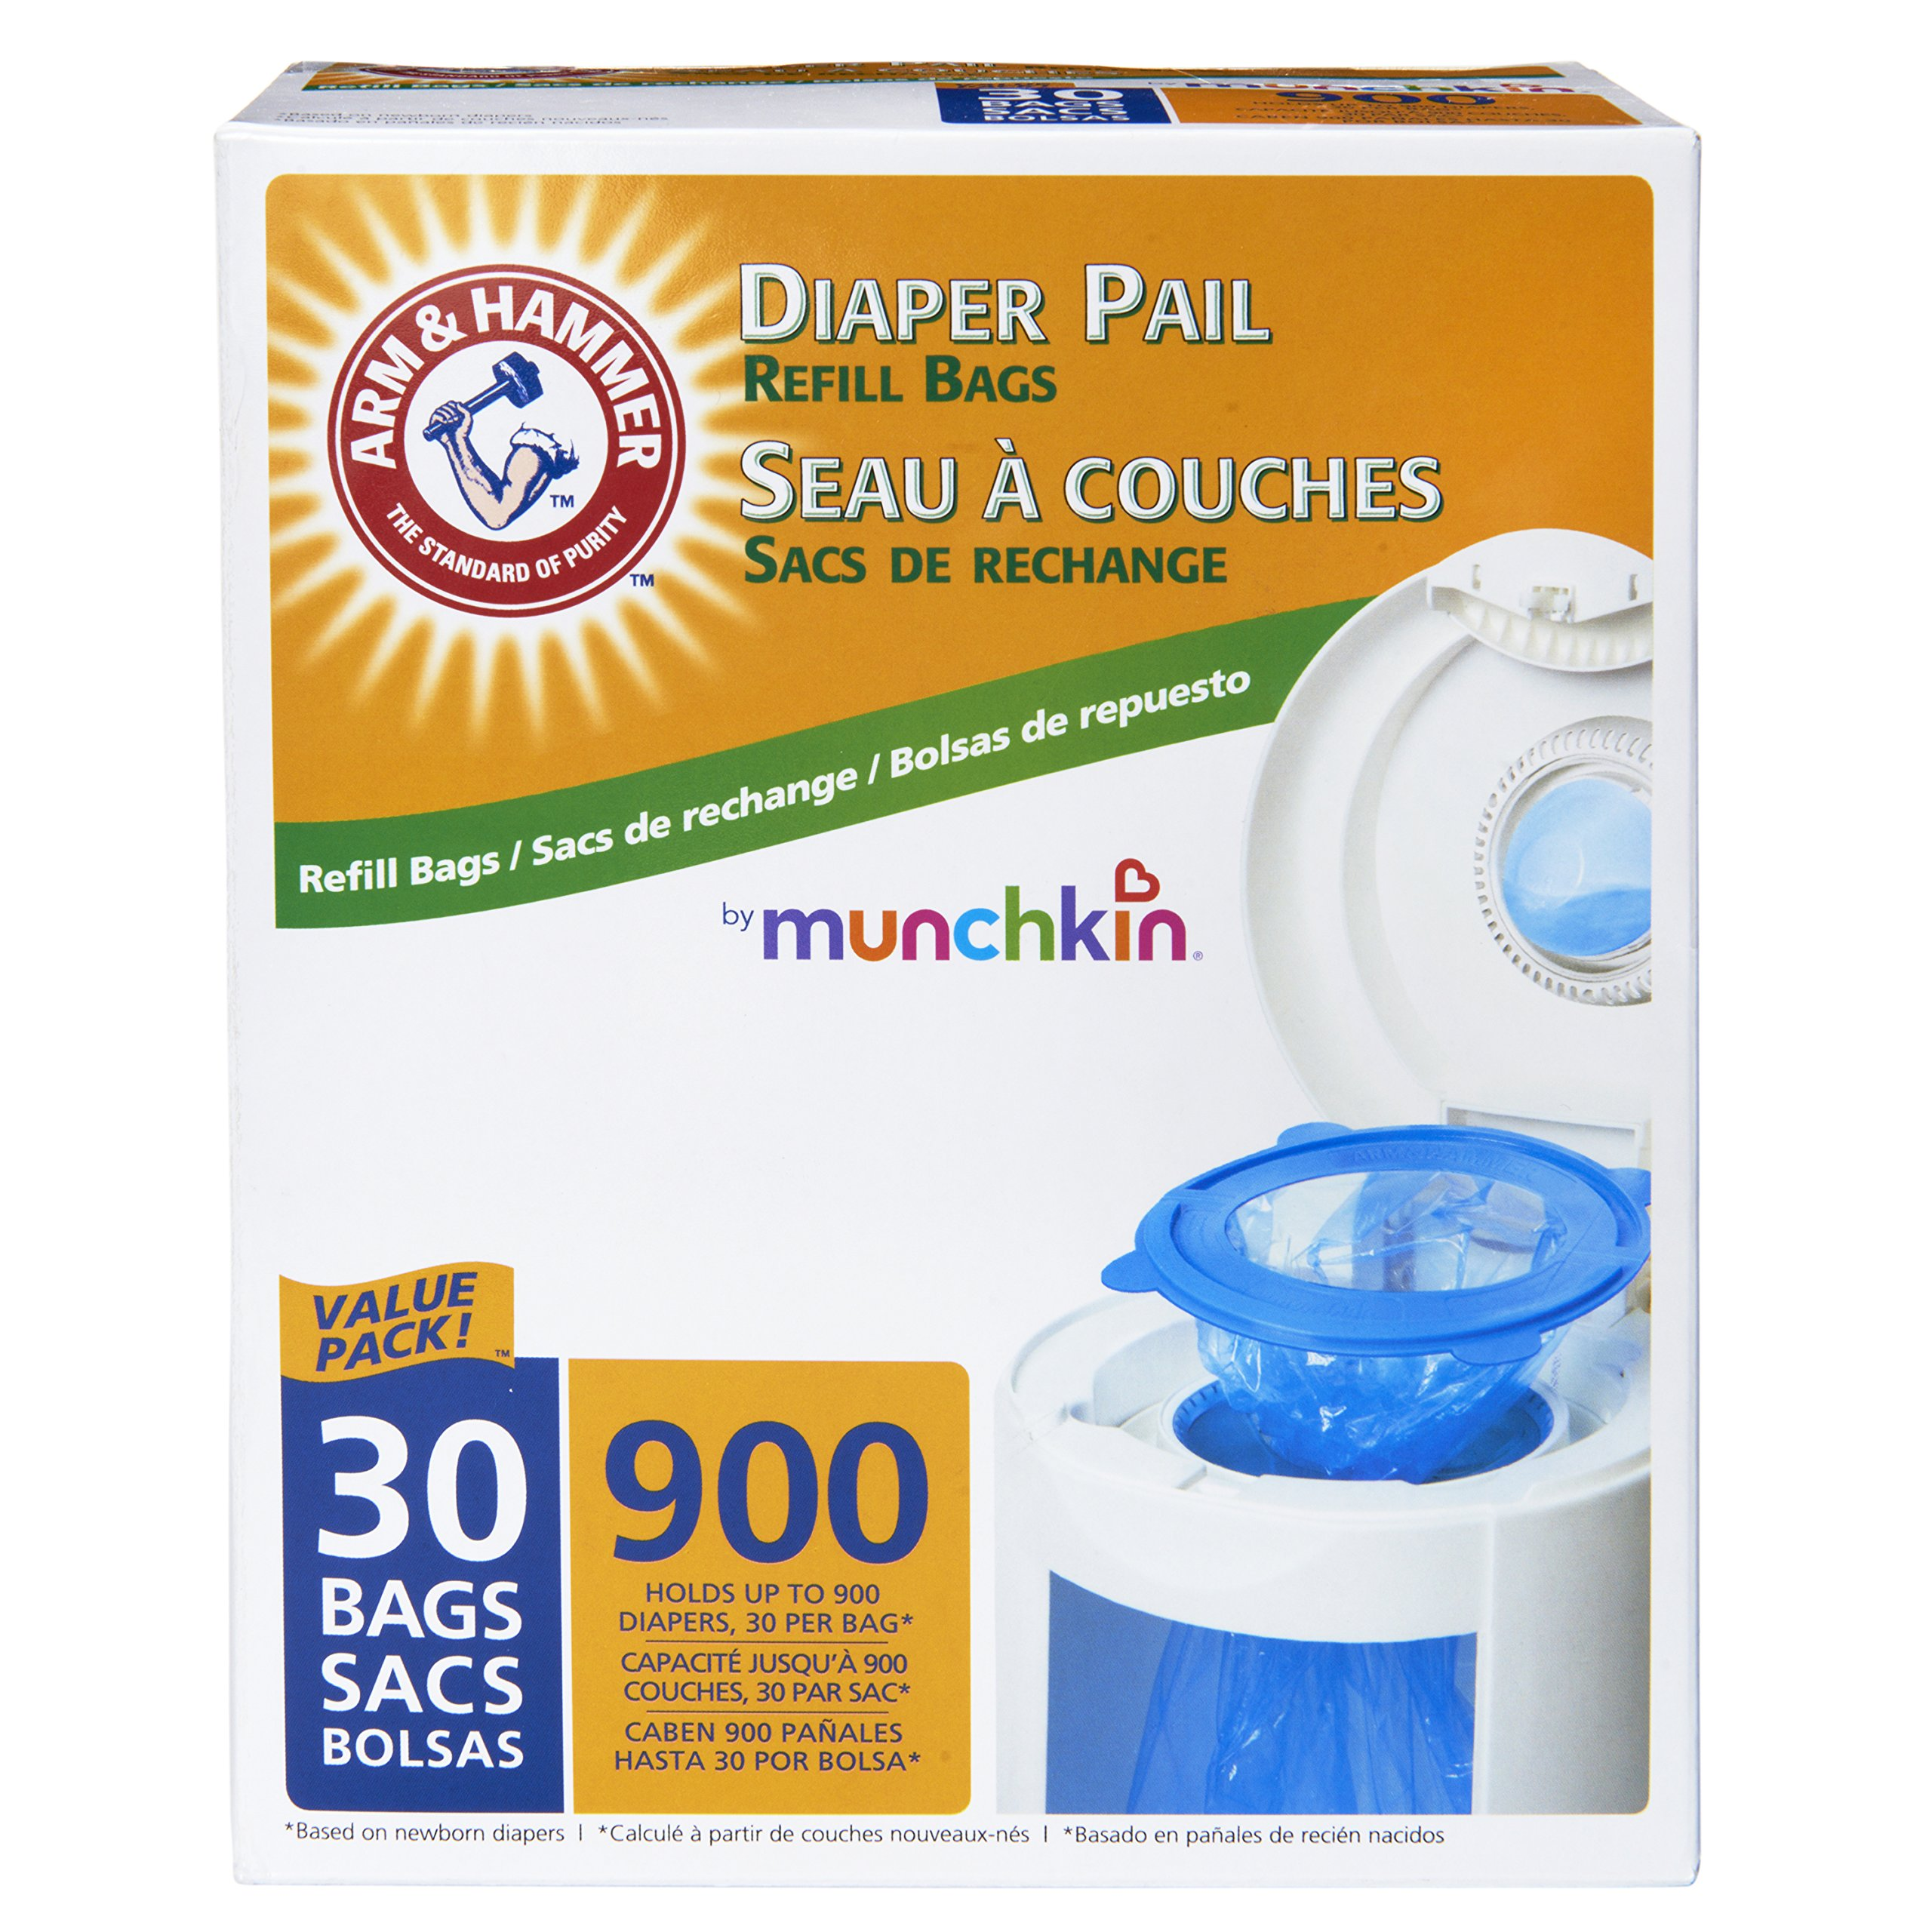 Munchkin Arm & Hammer Diaper Pail Snap, Seal and Toss Refill Bags, 900 Count, 30 Pack